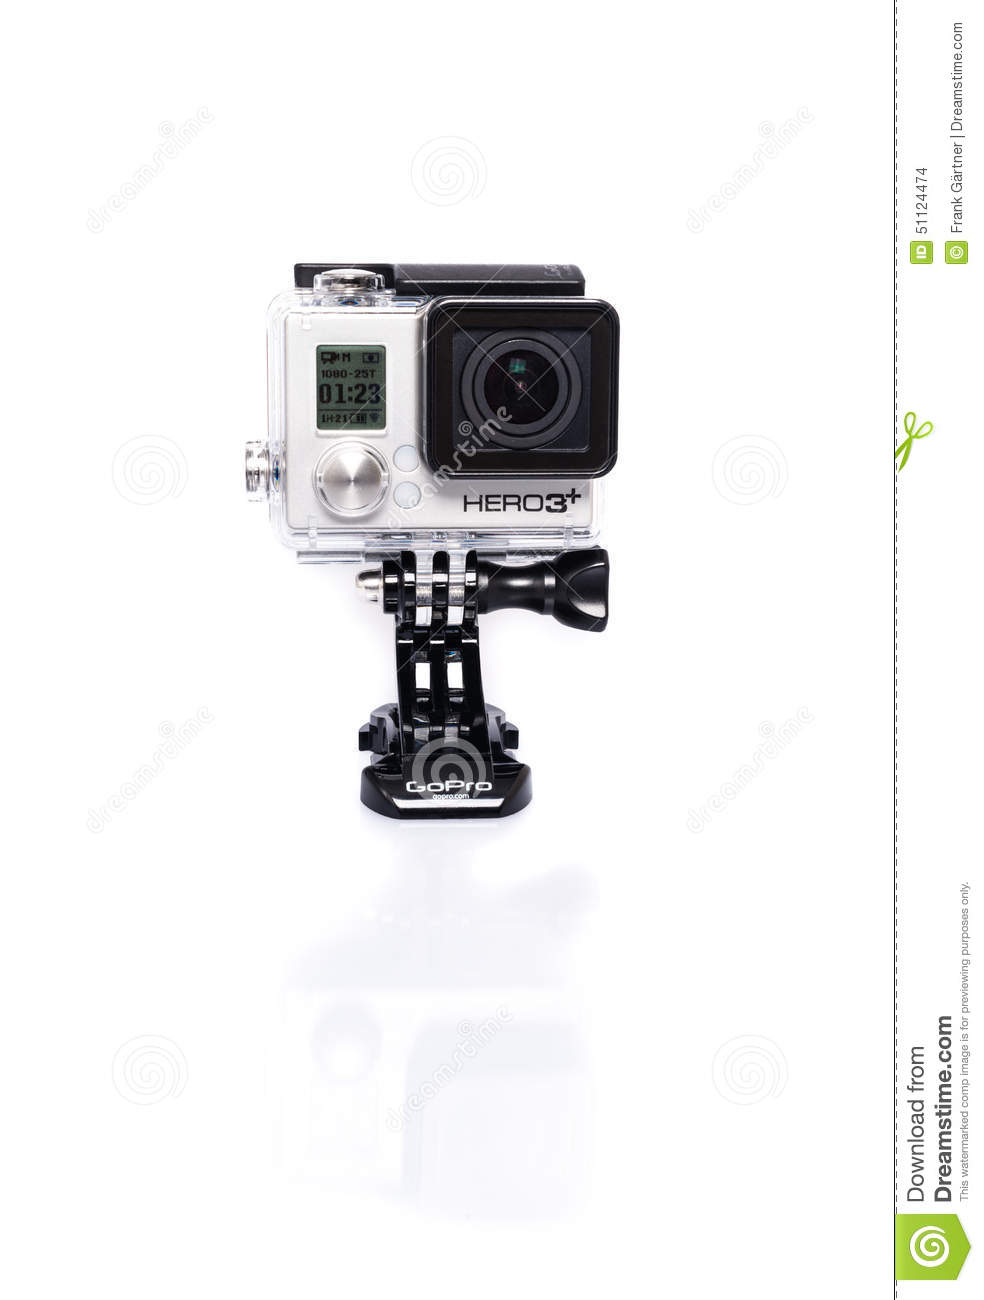 GoPro Hero 3+ Actioncam On White Editorial Stock Image